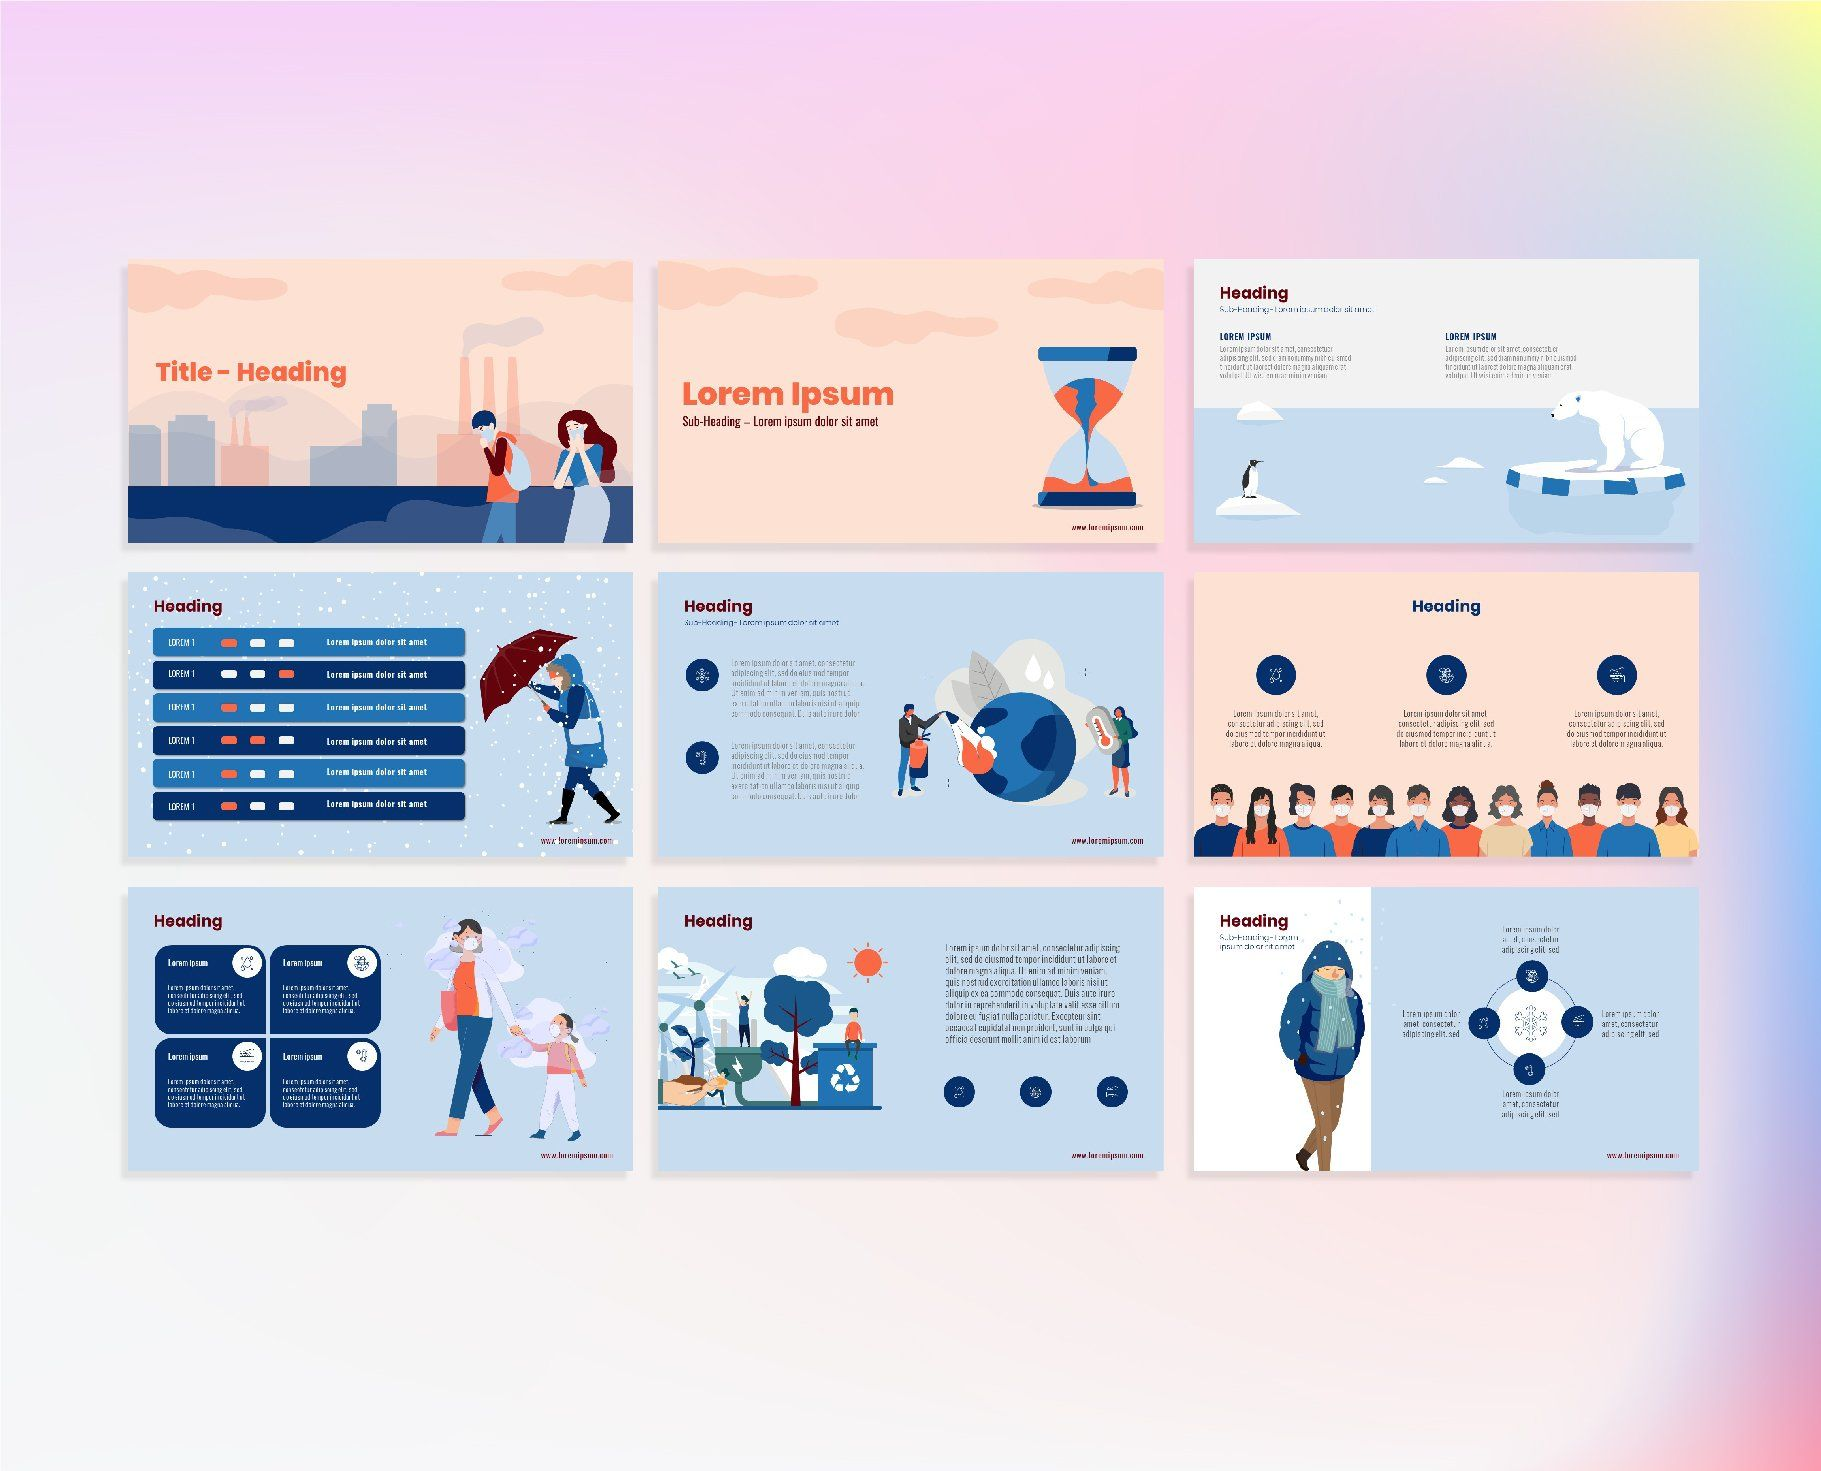 Check Out This Amazing Template To Make Your Presentations Look Awesome At Powerpoint Ppt Design Powerpoint Templates